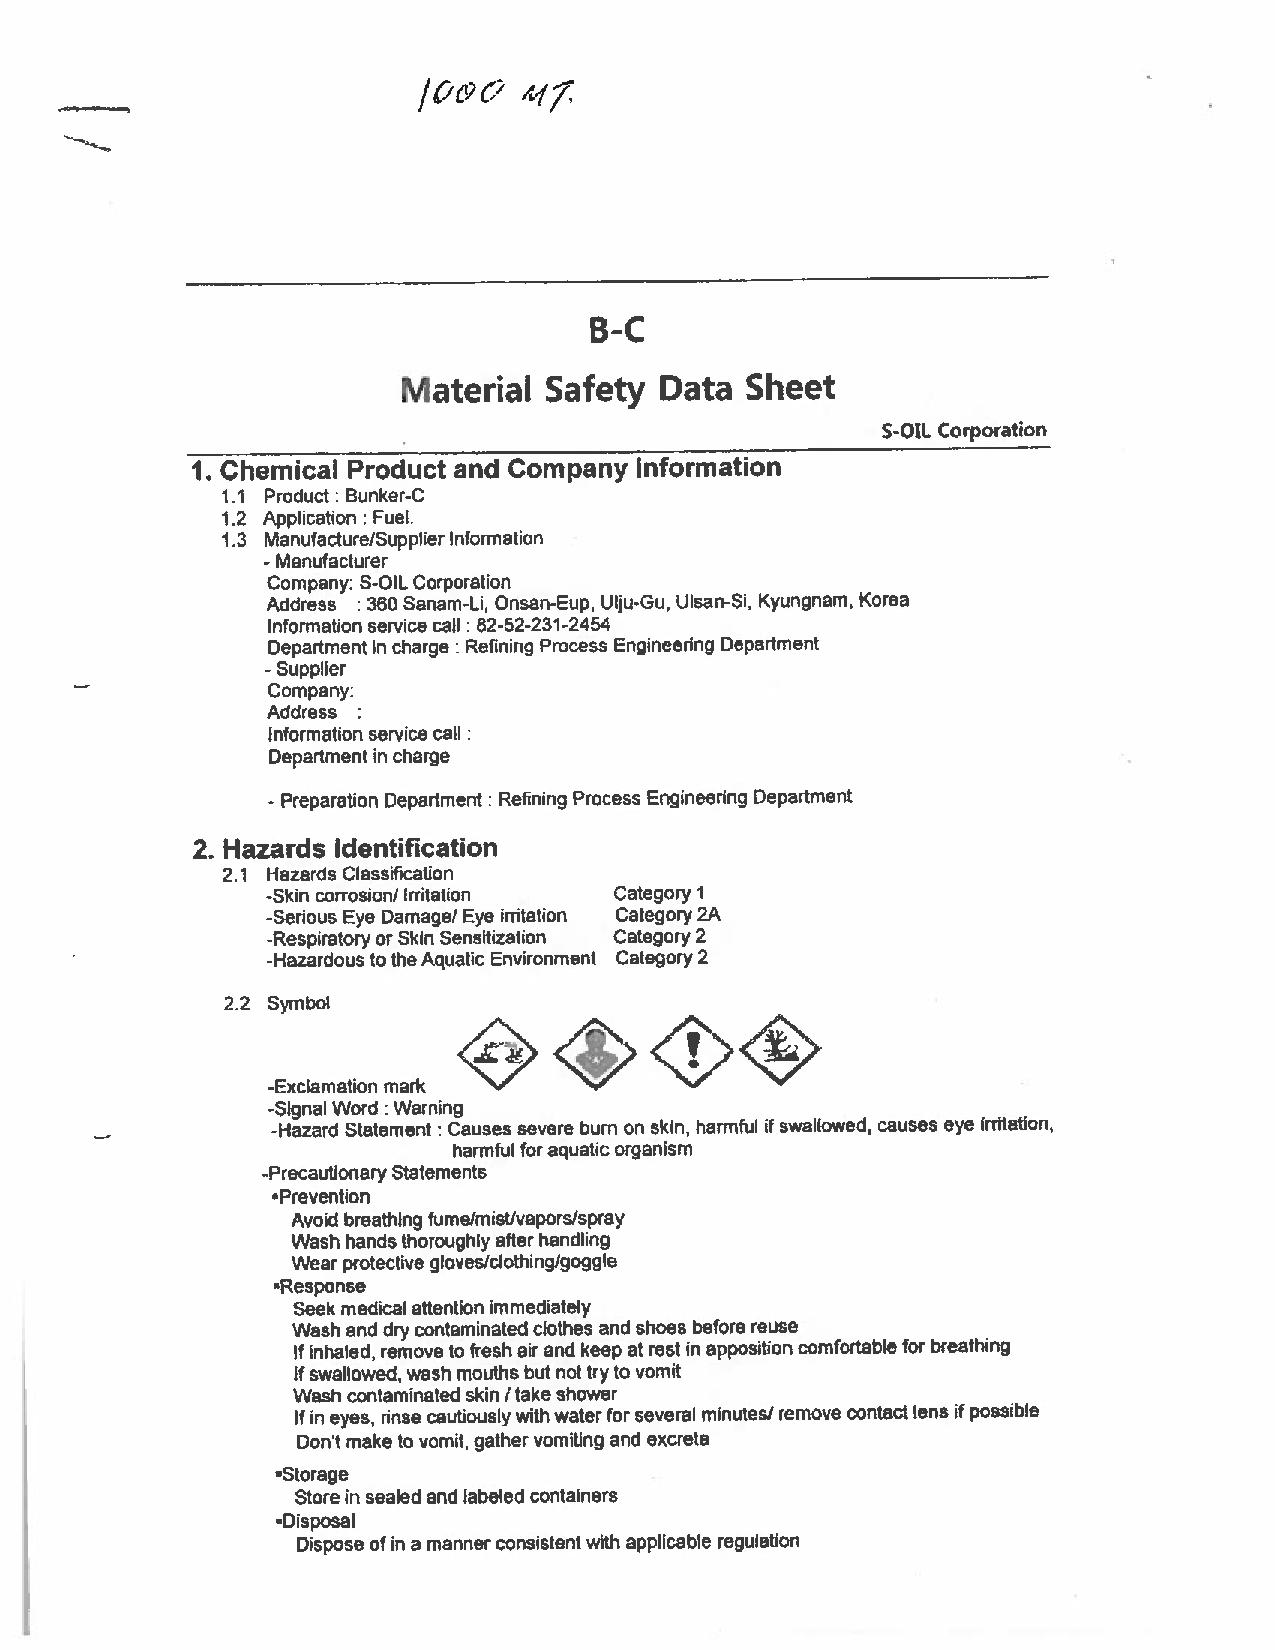 Scan of the 12th page of the M/V Marathassa's Material Safety Data Sheet